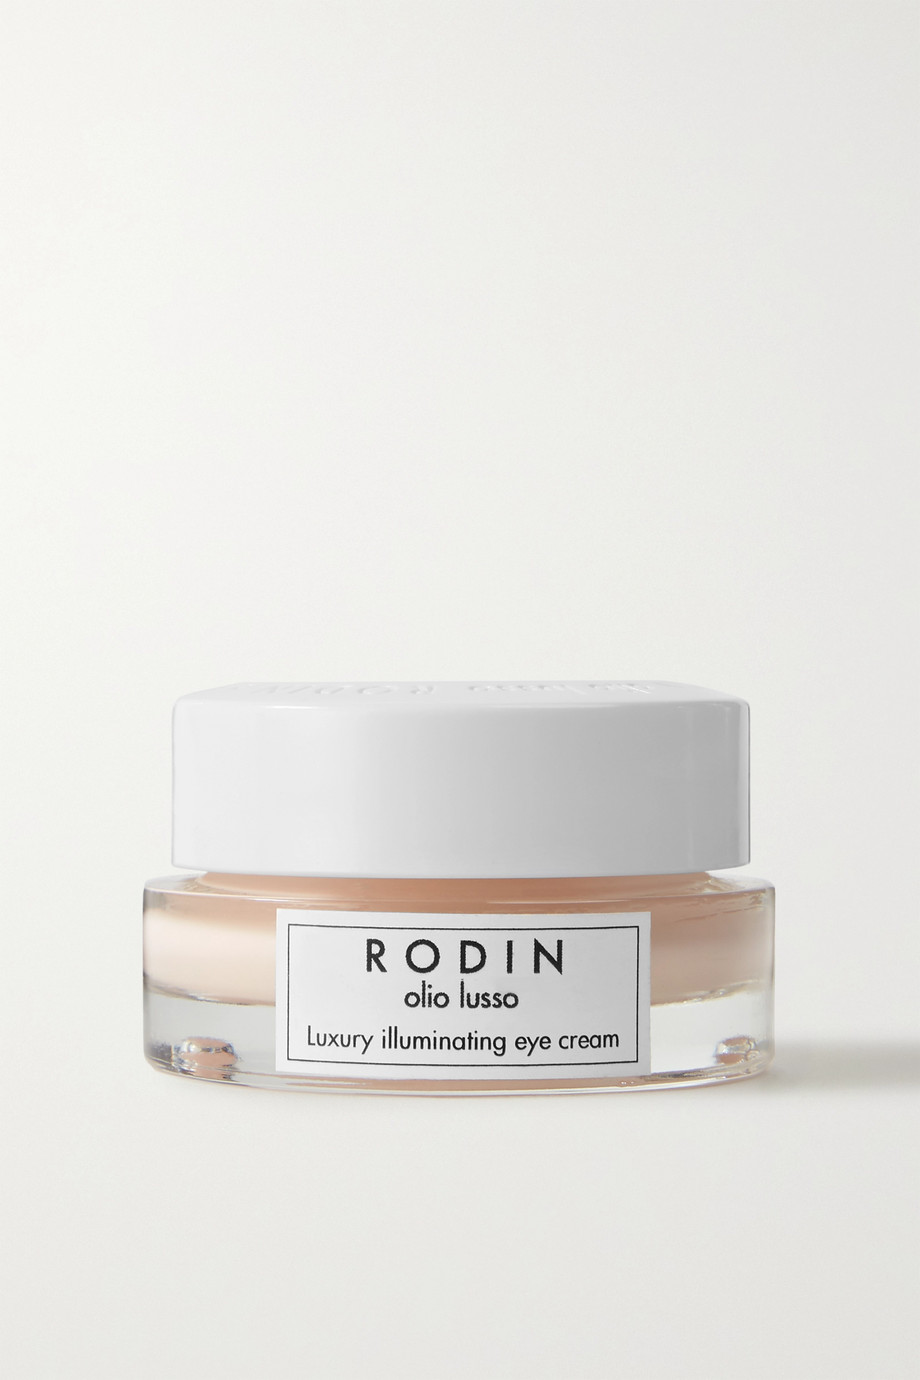 Rodin Luxury Illuminating Eye Cream, 15ml